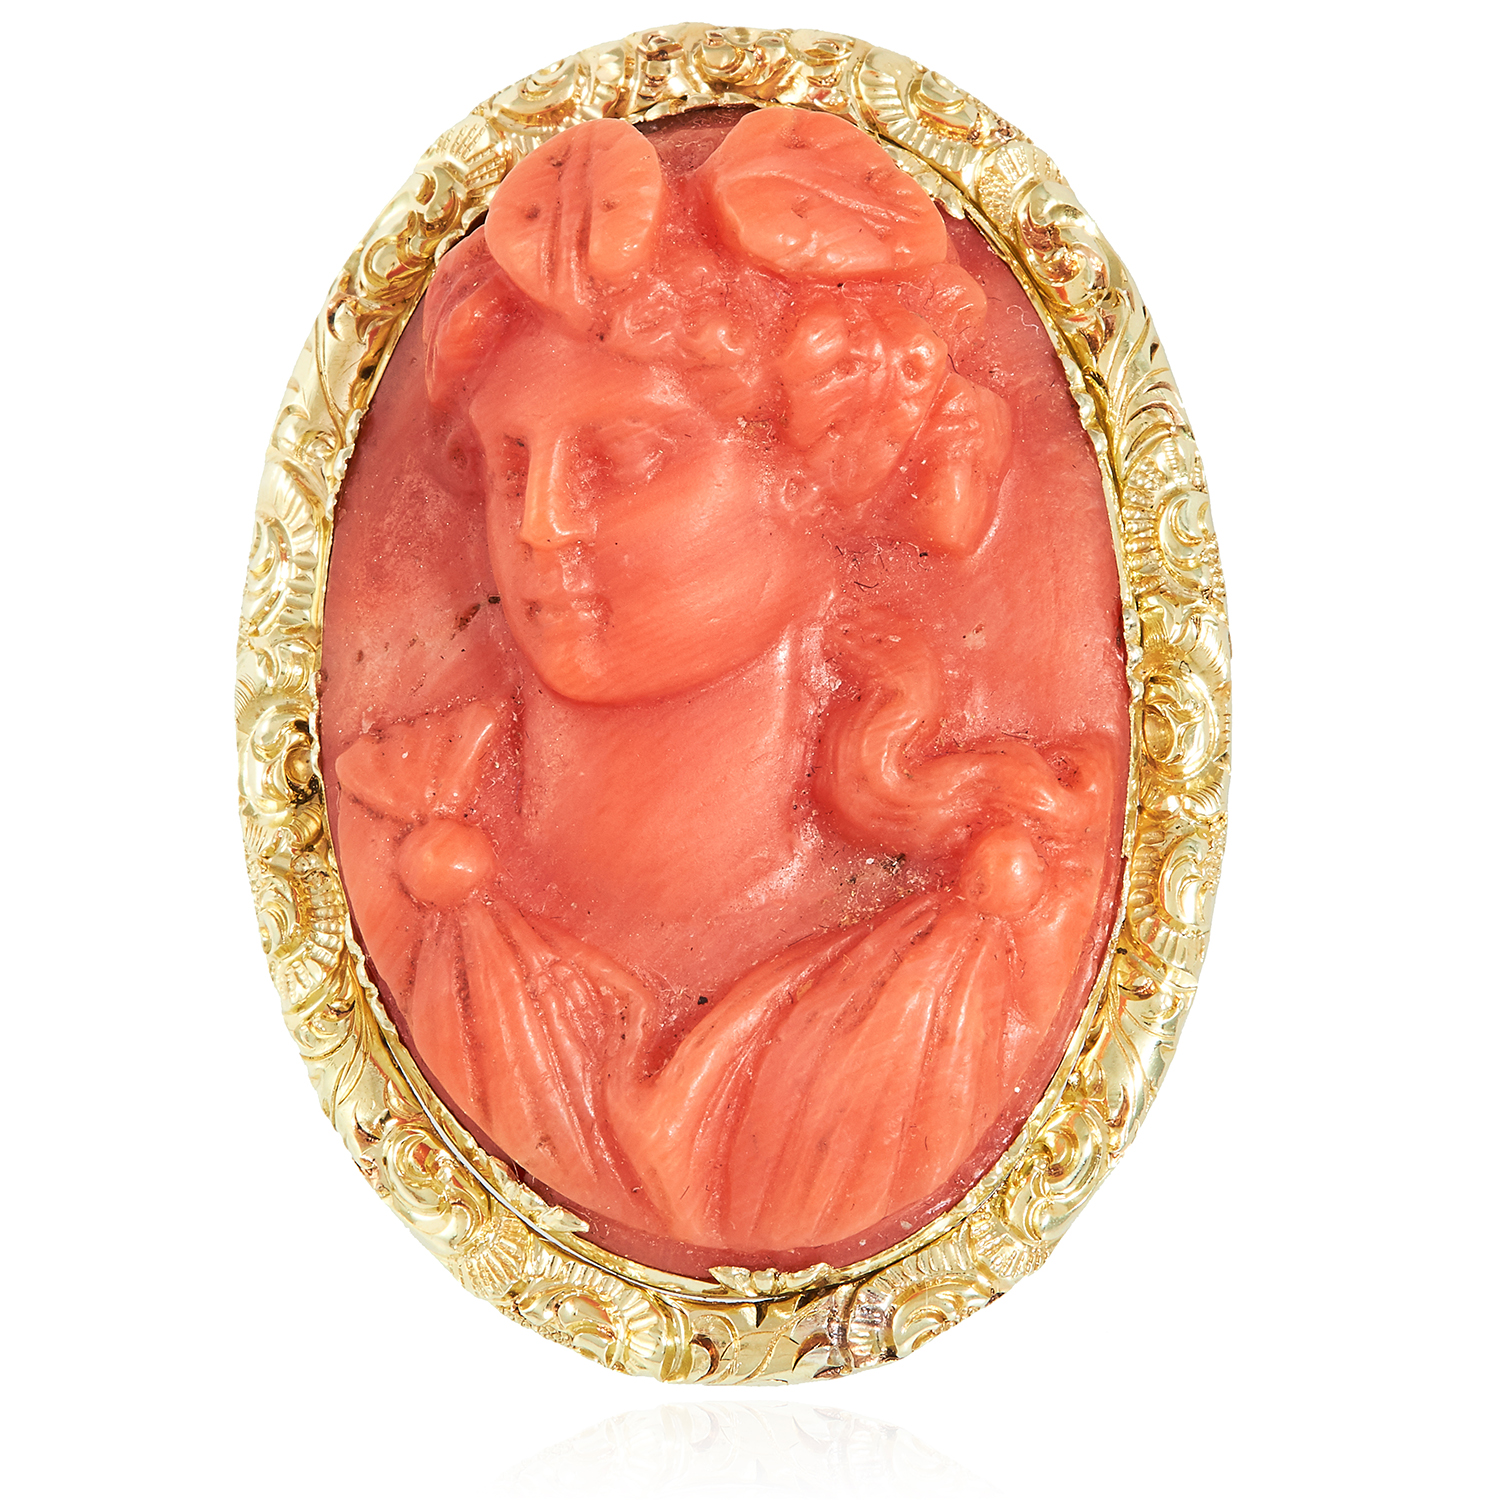 AN ANTIQUE CARVED CORAL CAMEO RING, 19TH CENTURY in high carat yellow gold, the large oval cameo